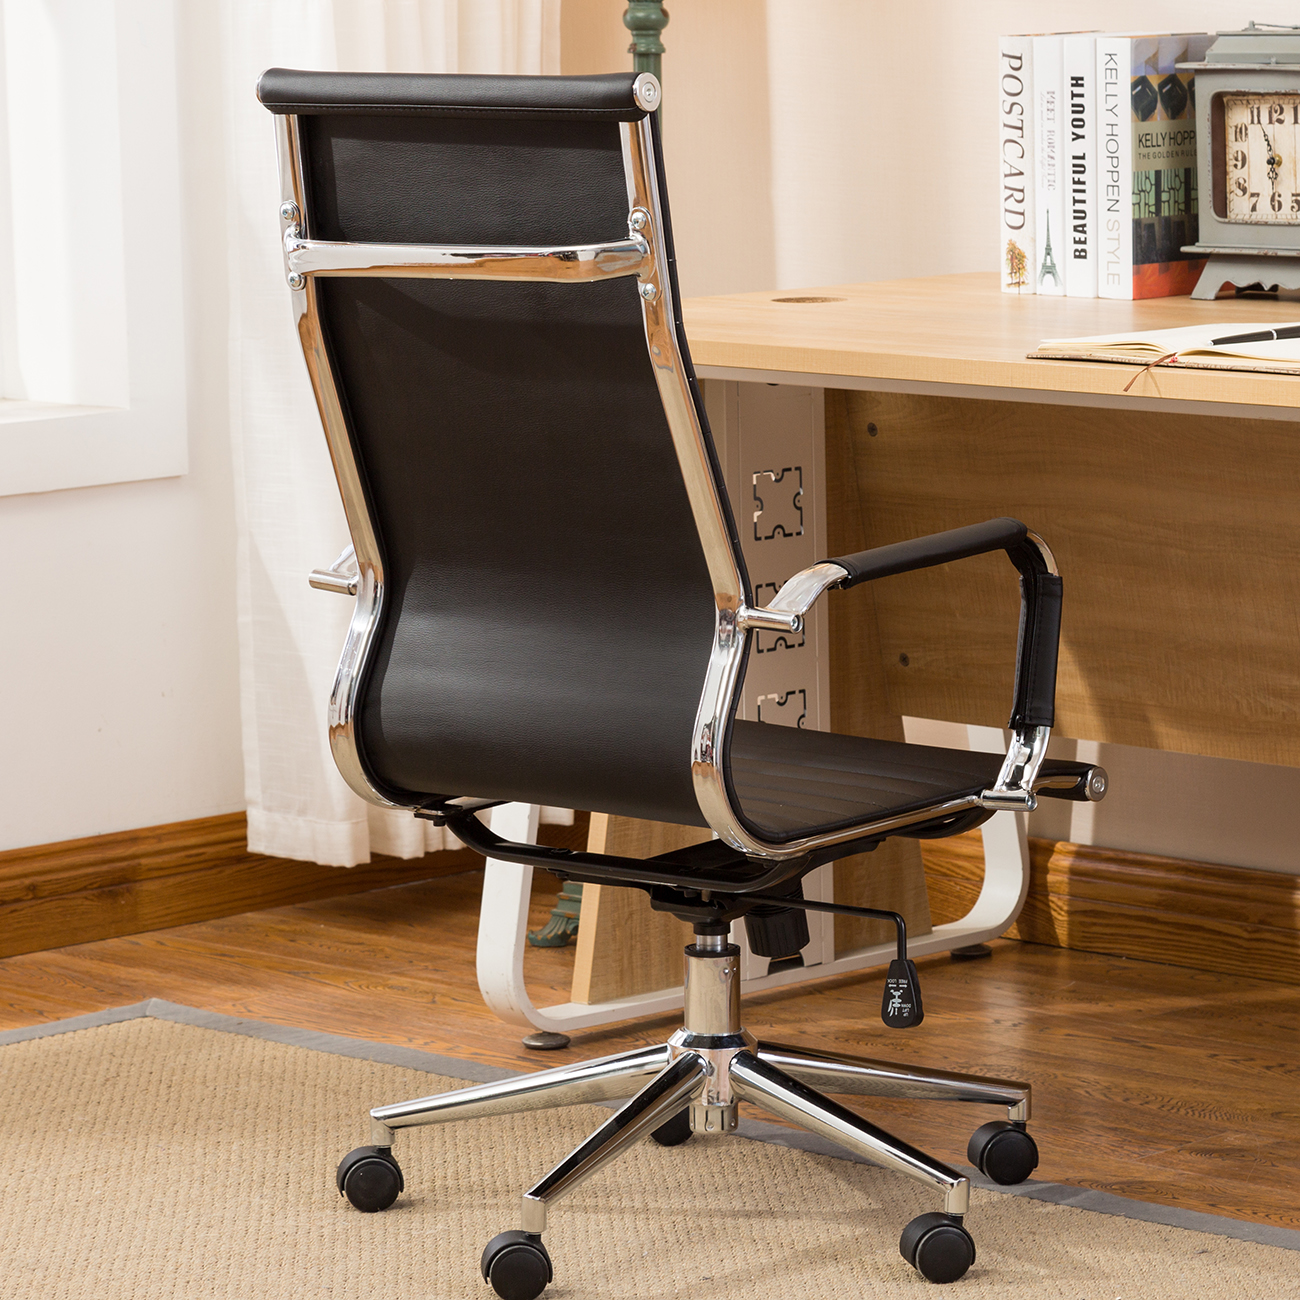 ergonomic office chair ebay best reclining ribbed pu leather high back executive computer